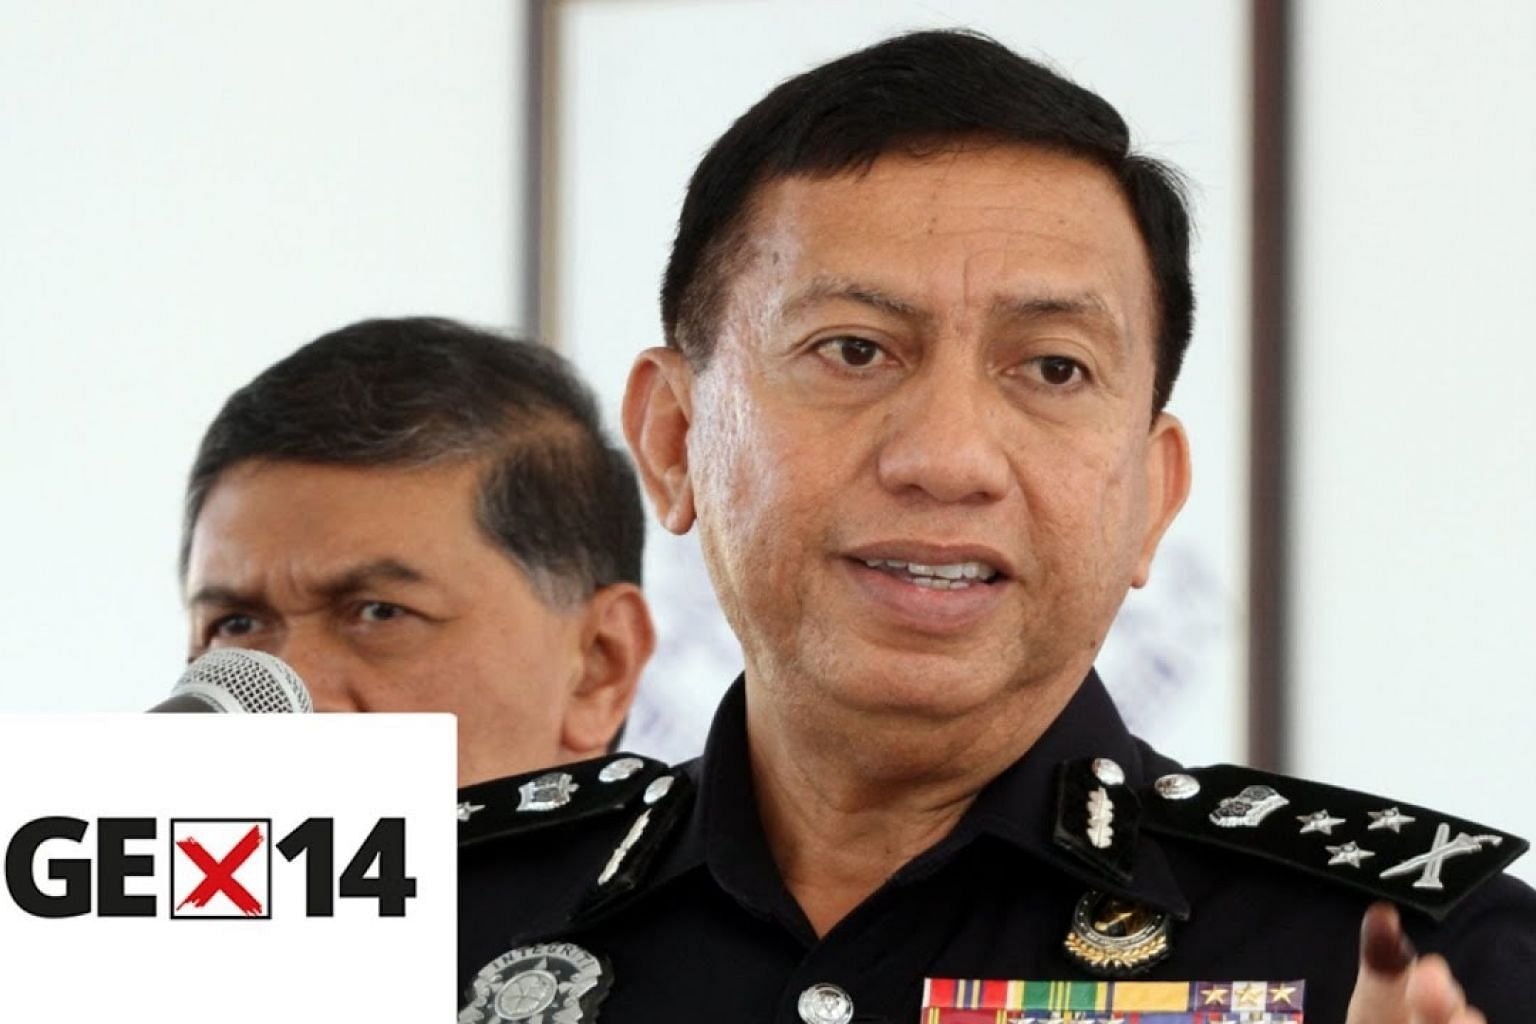 Additional 10,000 cops deployed this week